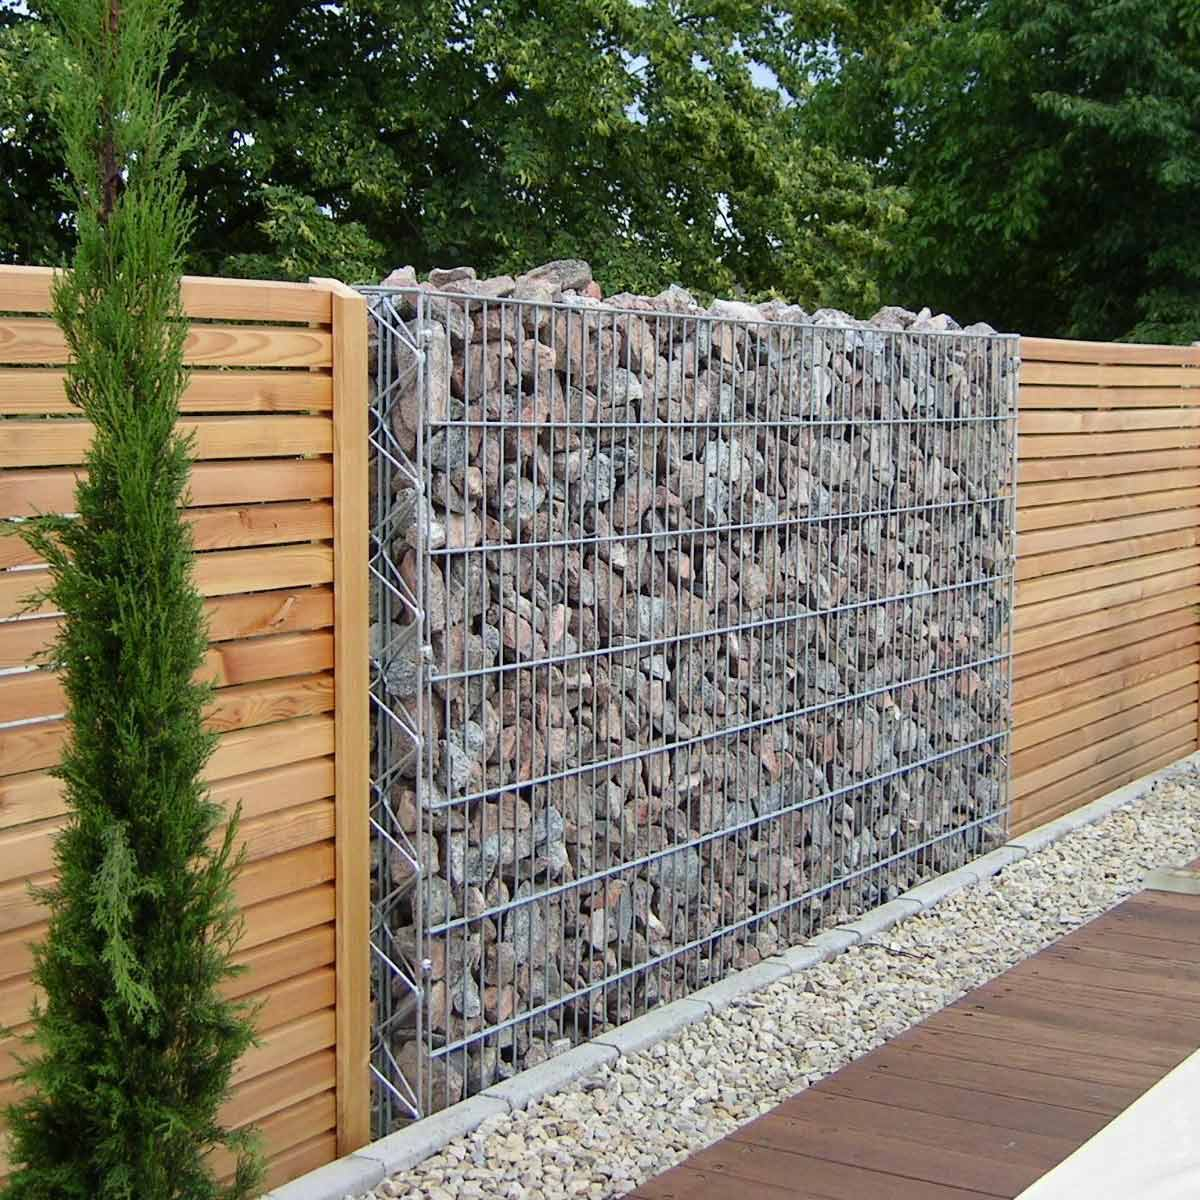 Yard Fencing 10 Modern Fence Ideas Family Handyman intended for 12 Some of the Coolest Initiatives of How to Build Fence Ideas For Small Backyard